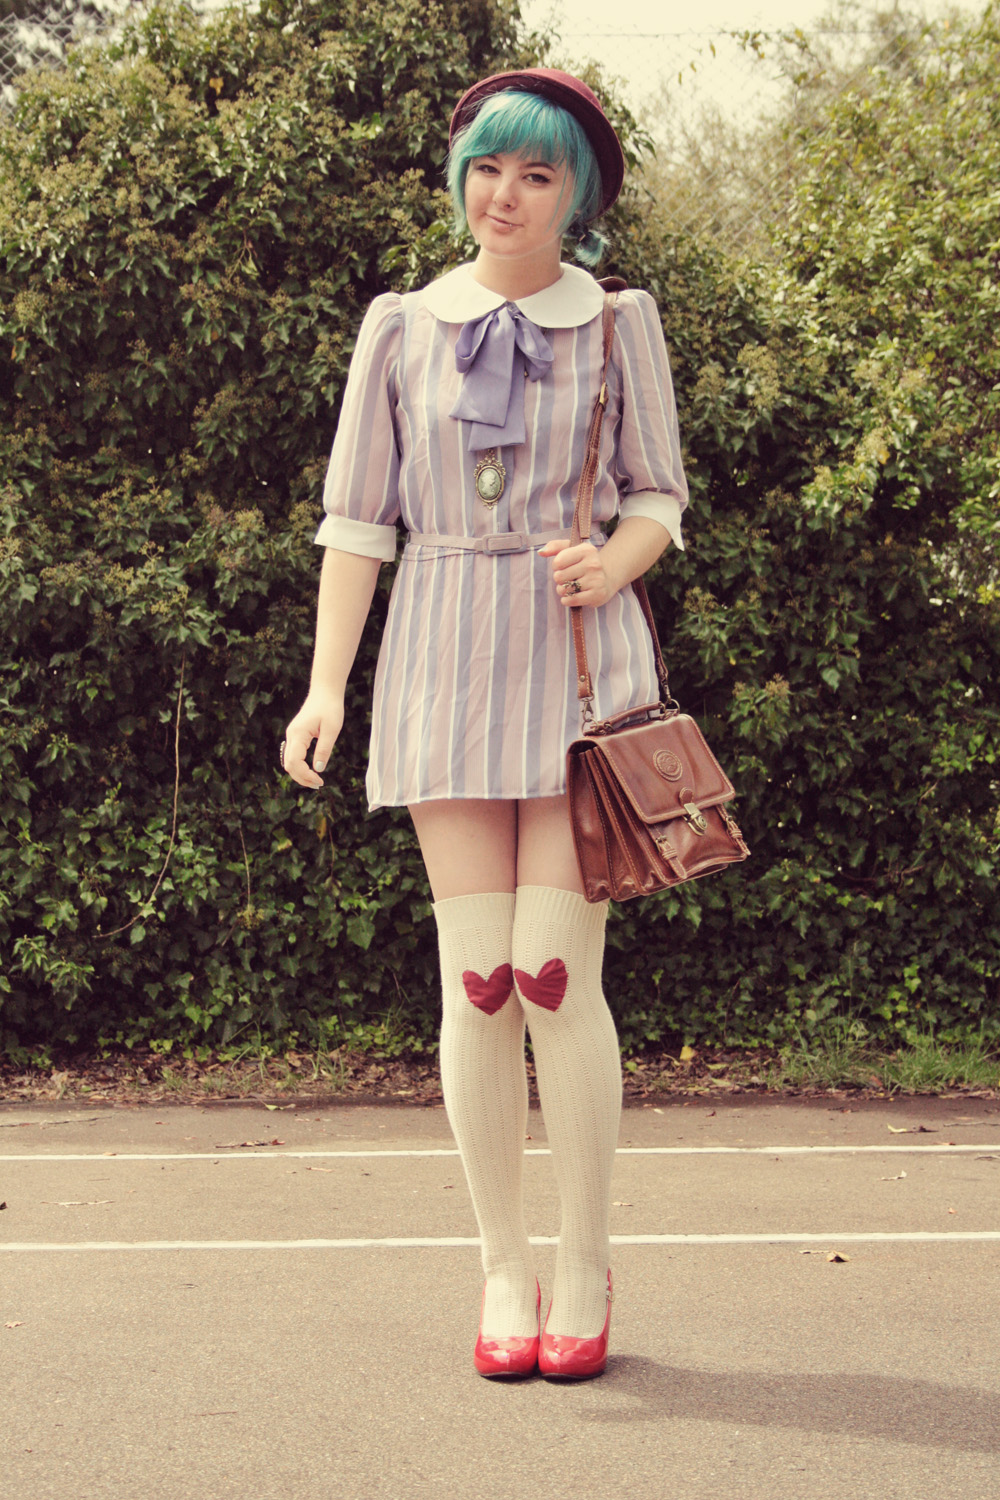 The Pineneedle Collective: DIY Knee Patches & Vintage Dresses